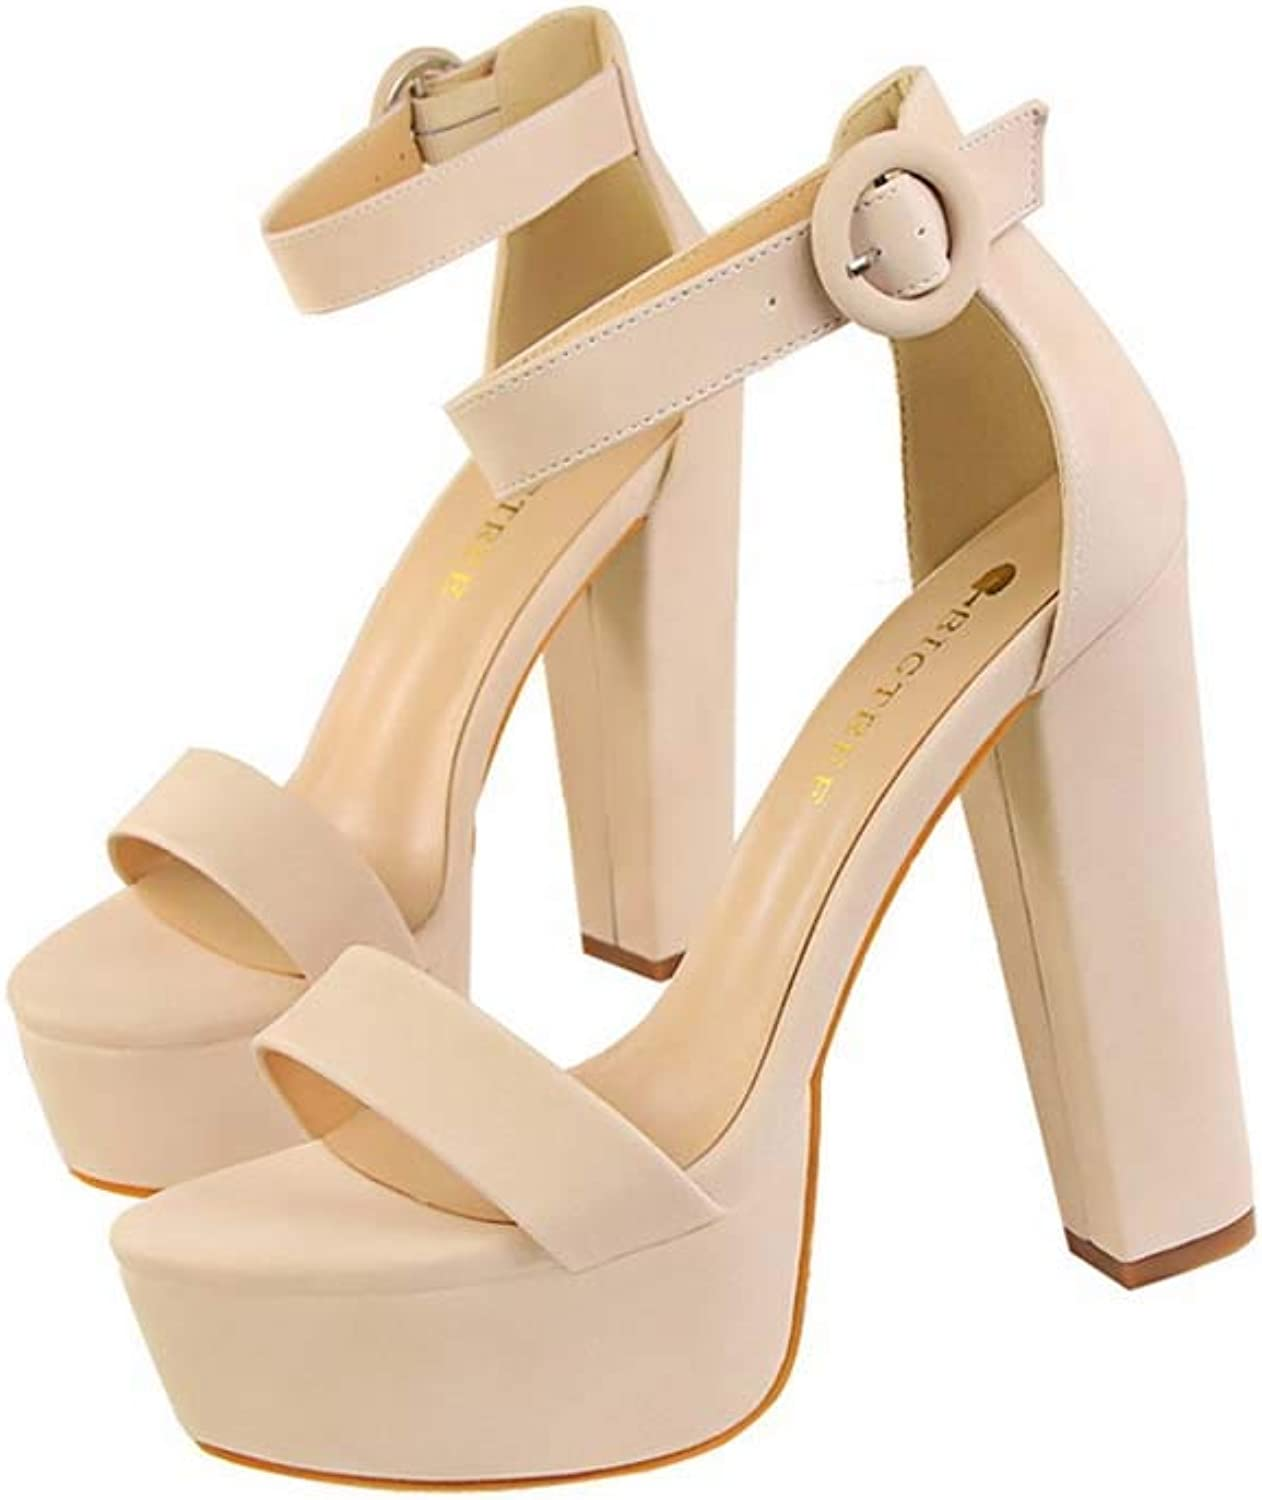 Womens Ankle Strap Open Toe Sandals,Ladies Block Heels Stiletto High Heel Strappy Buckle Prom Party shoes Size